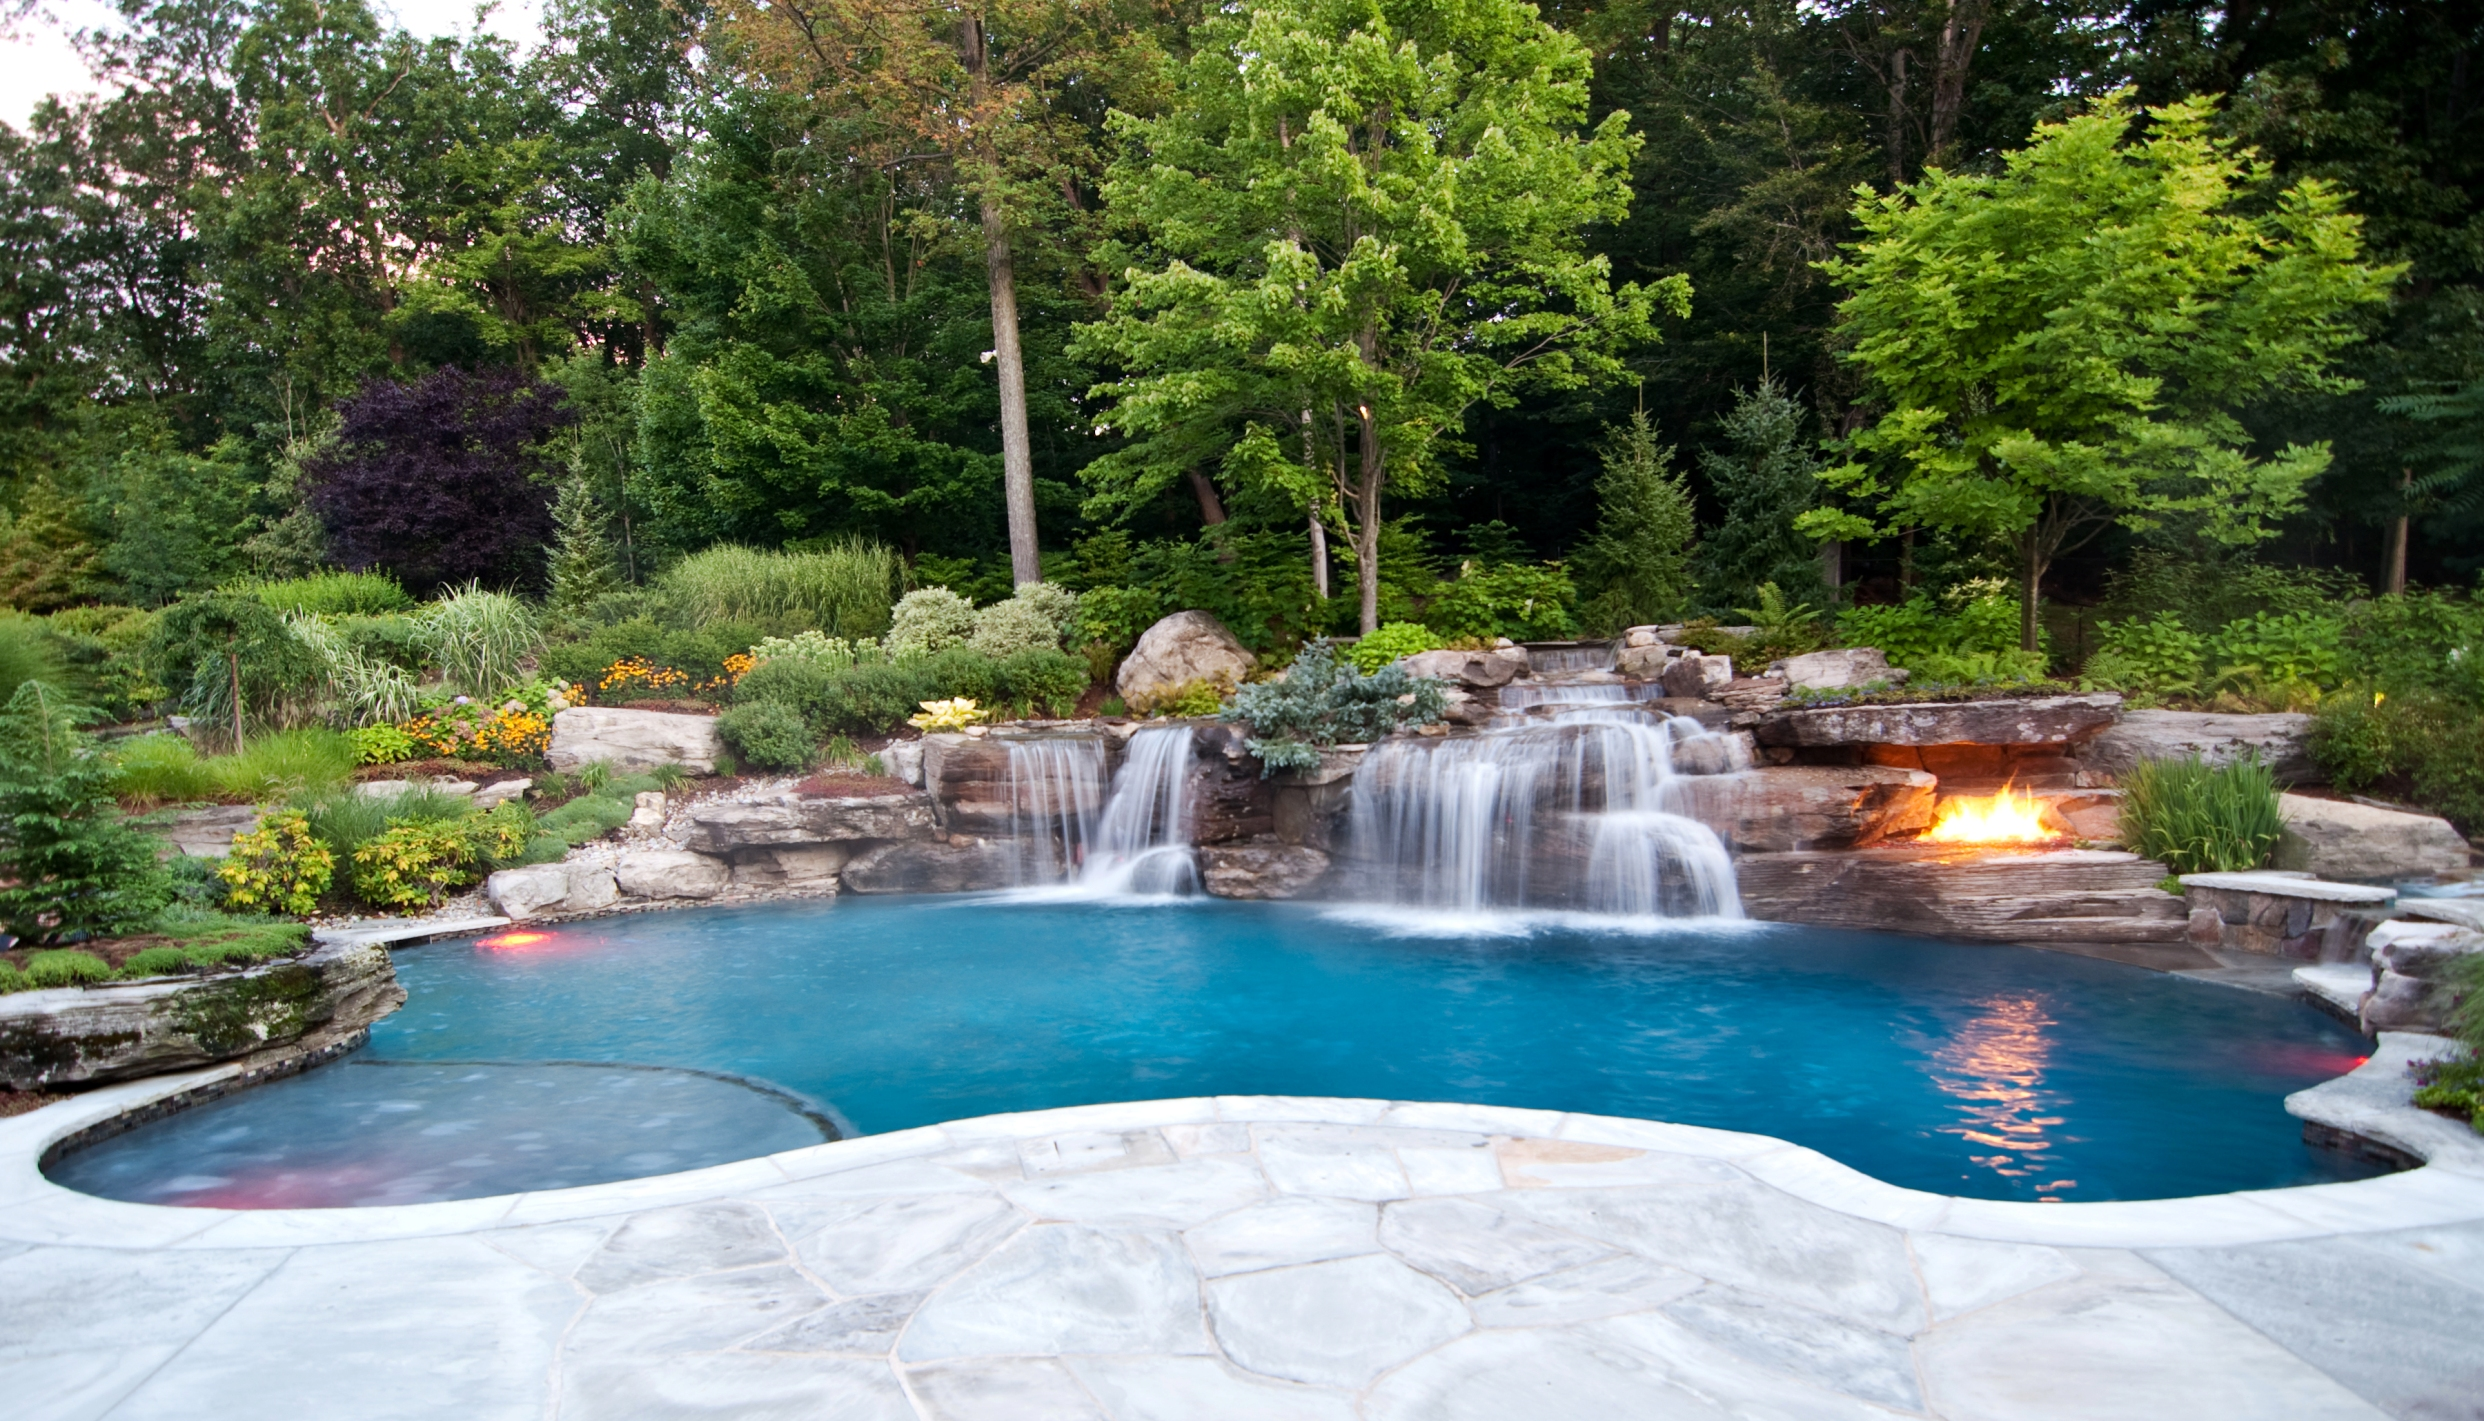 Backyard Pool Designs | Average Price Inground Pool | Small Inground Pools for Small Spaces